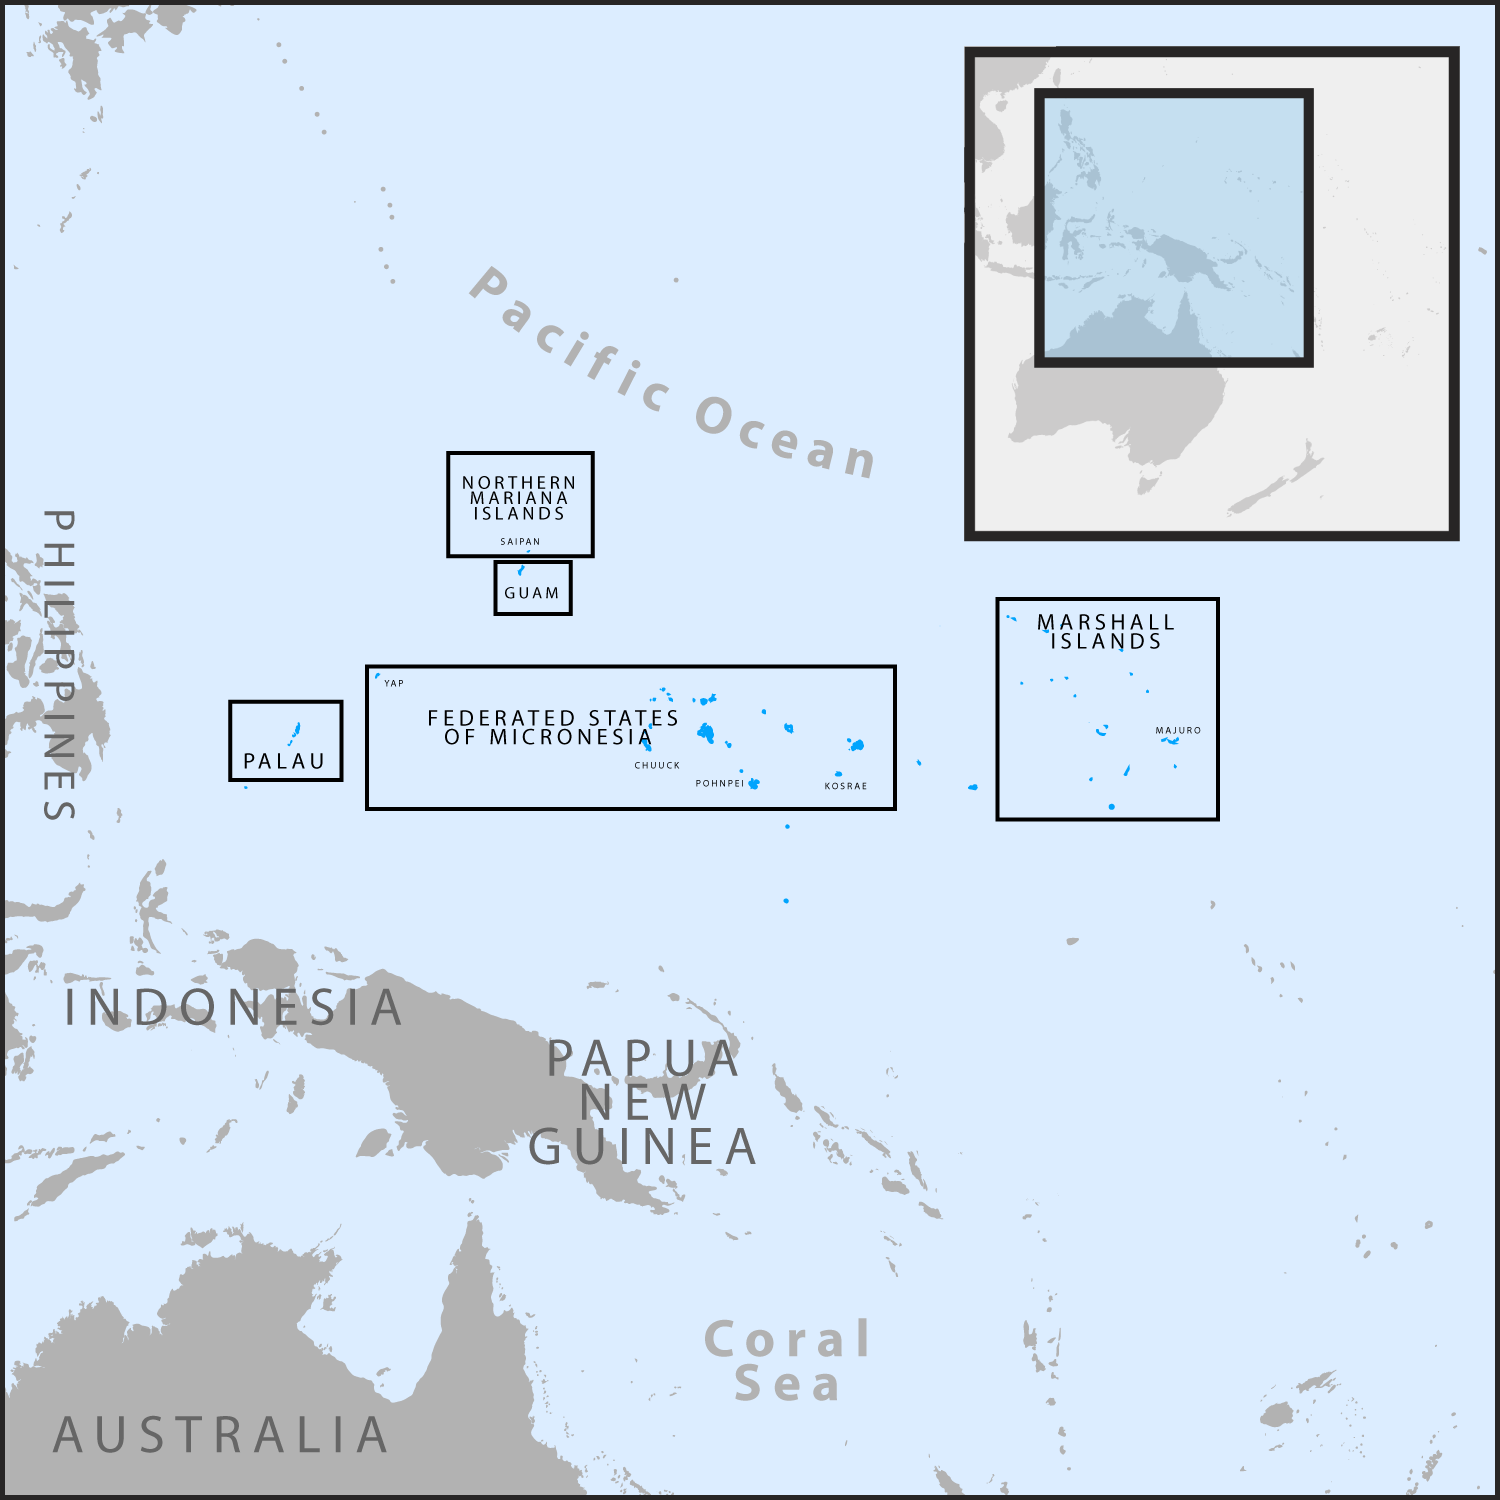 Map of Micronesia region